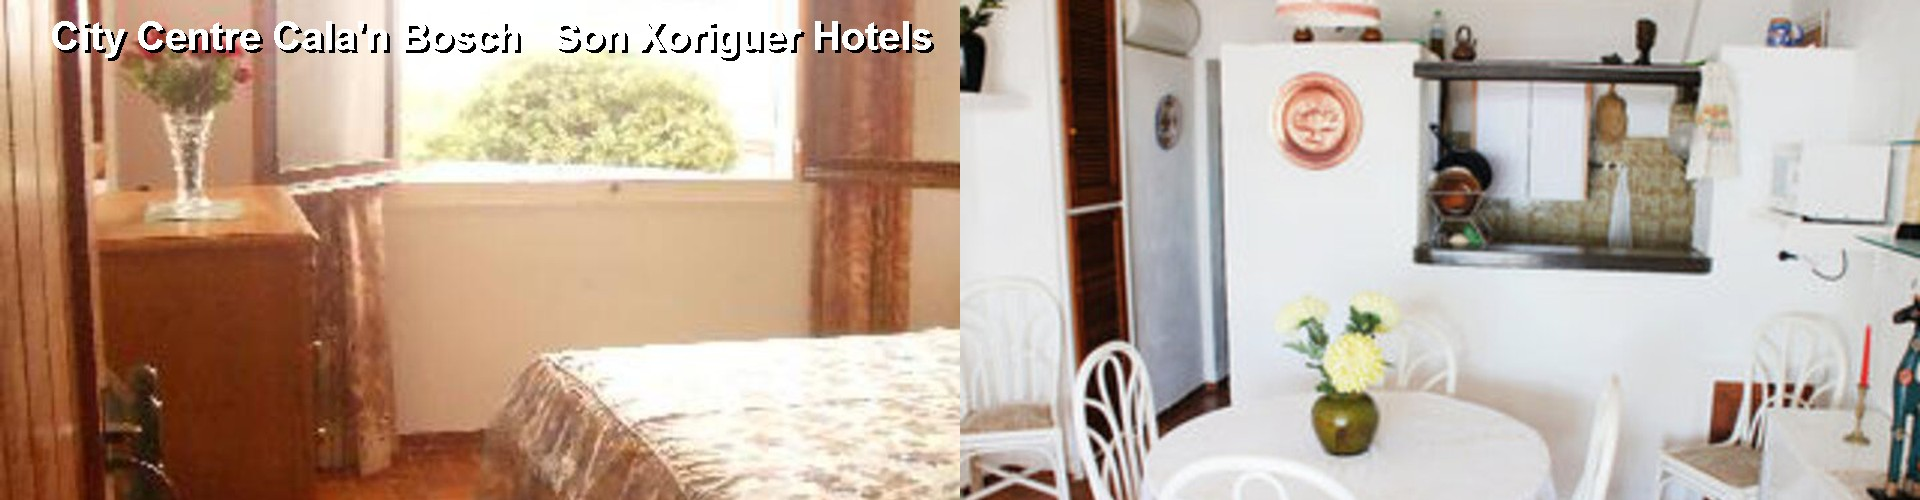 2 Best Hotels near City Centre Cala'n Bosch   Son Xoriguer